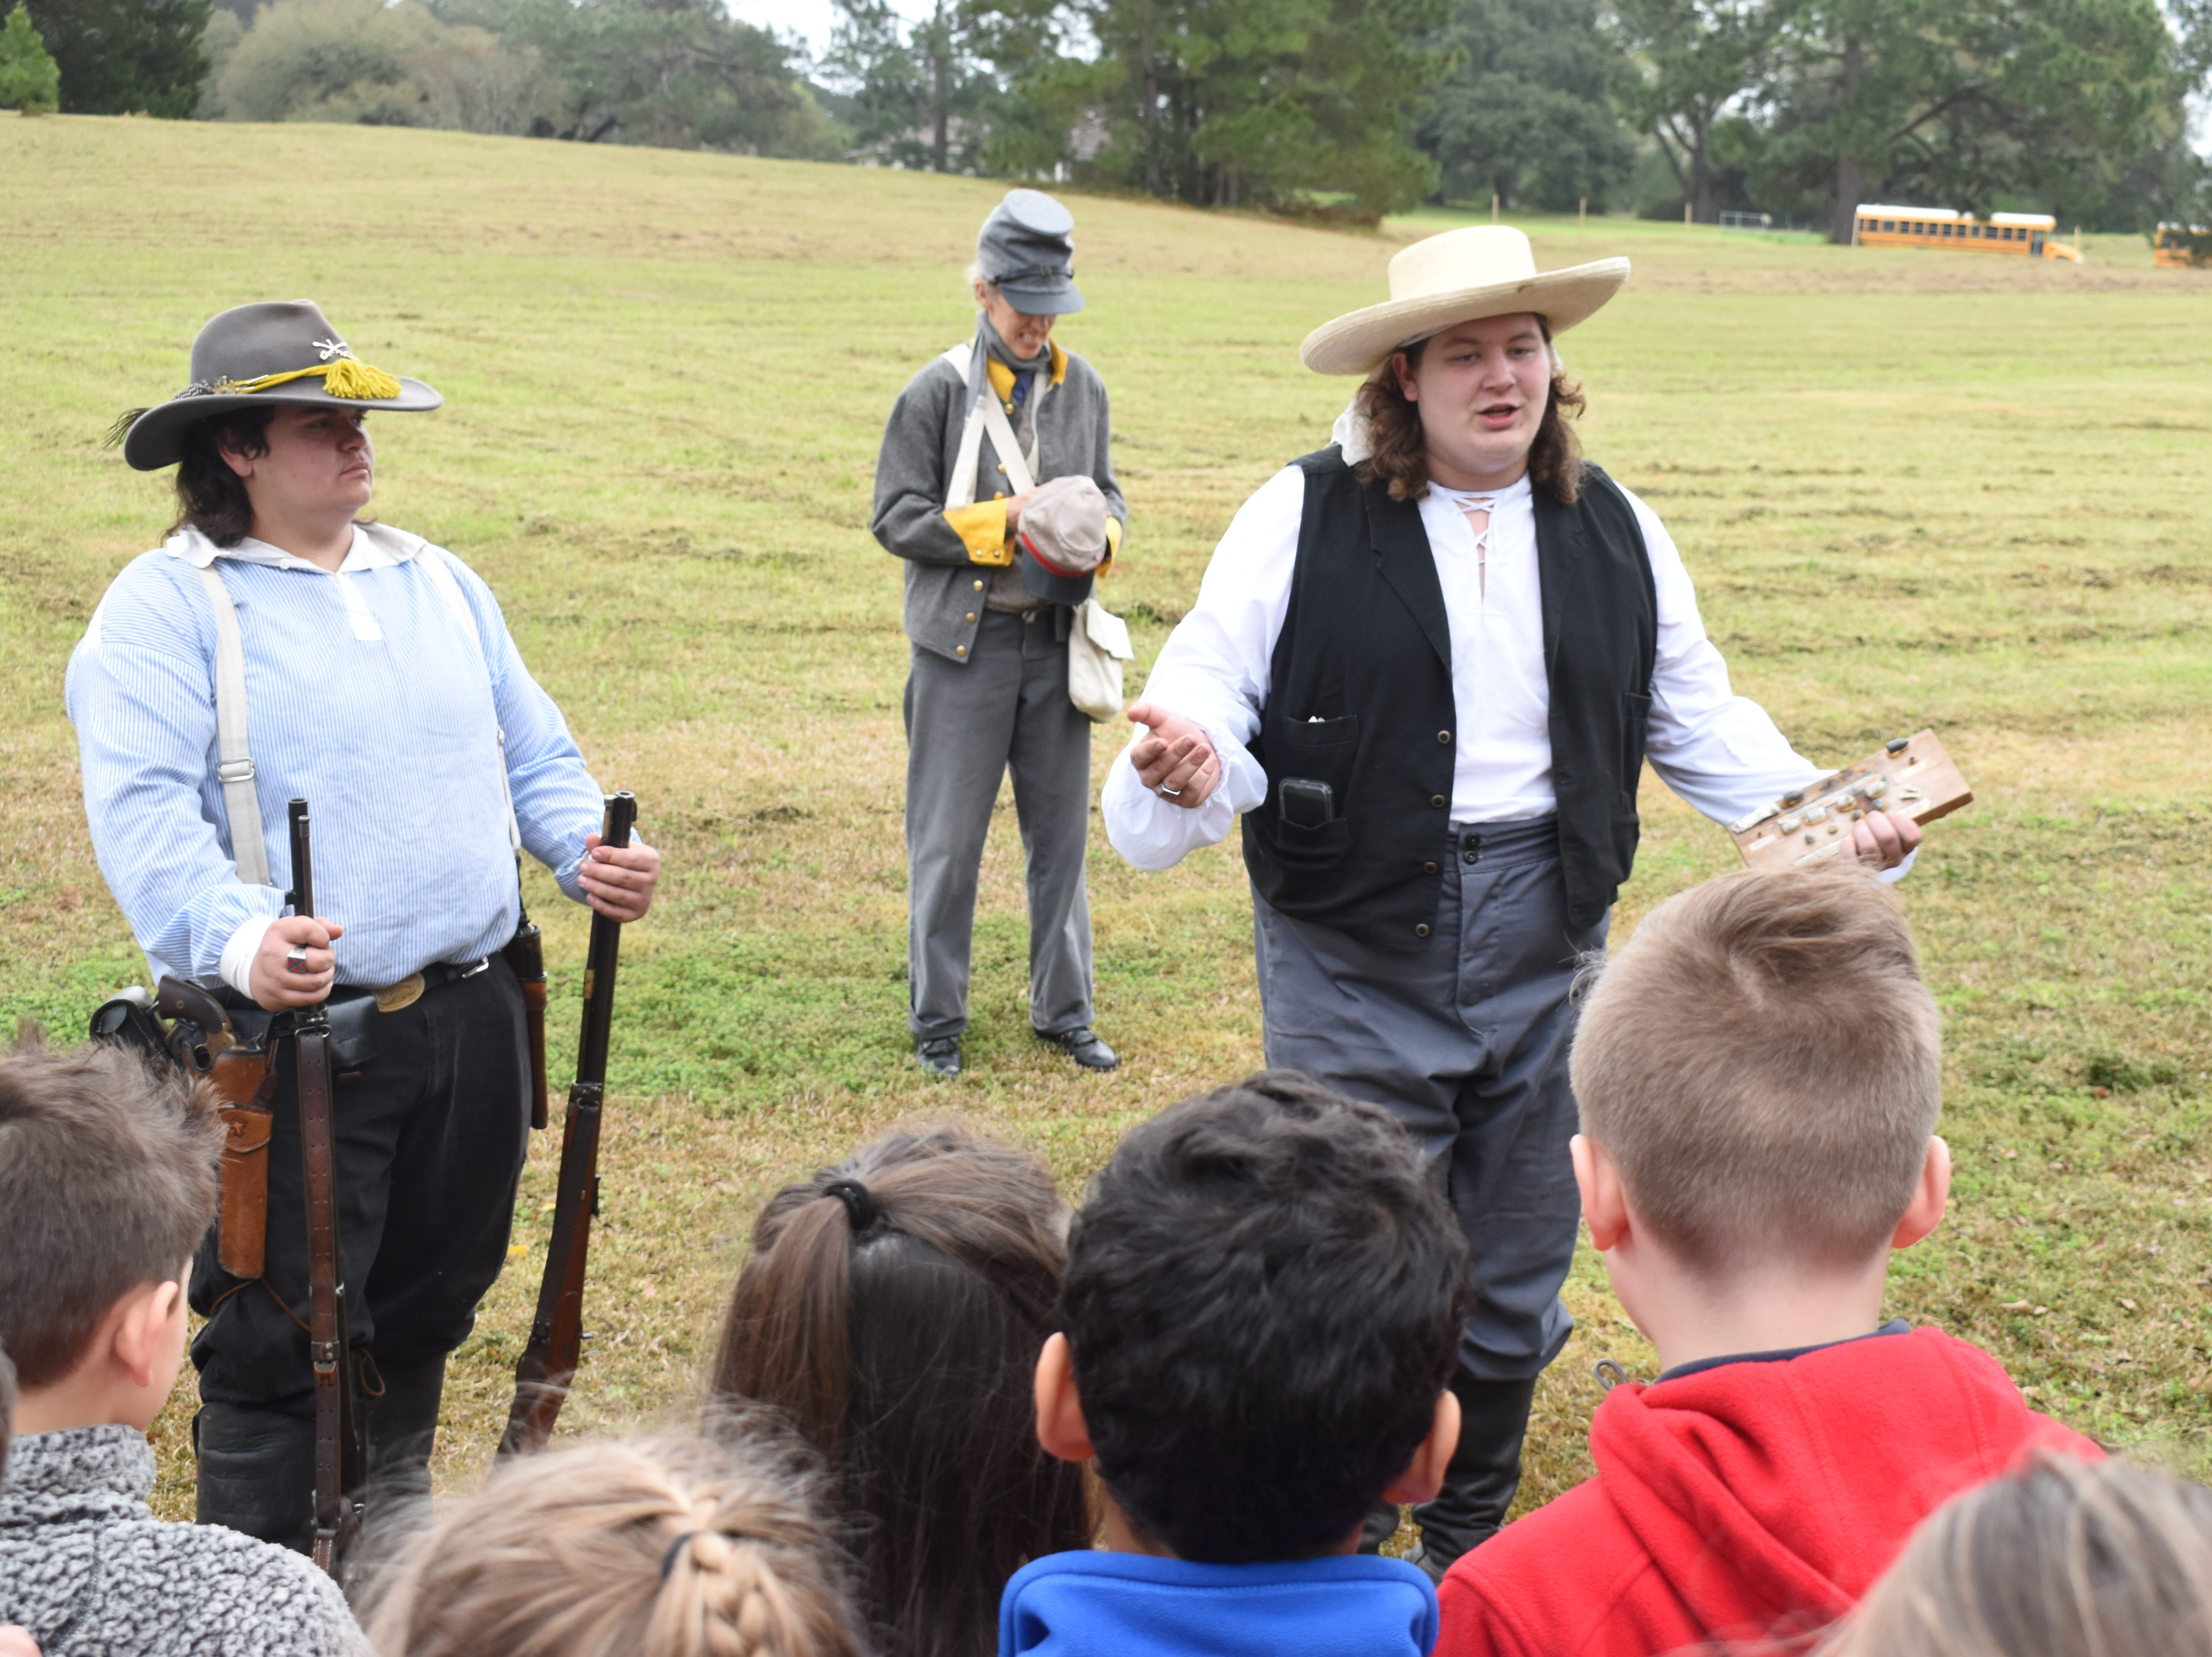 """Students from area schools were given campfire tours and living history demonstrations Friday, March 8, 2019 at Forts Randolph and Buhlow State Historic Site in Pineville. The demonstrations are part of """"Blue & Gray on the Red"""" which gives a glimpse of what life was like during the Civil War for soldiers and civilians. Camp Life tours will be - a.m. to 12 p.m. Saturday with the Battle Re-enactment set for 1 p.m. A Ladies' Congress is set from 11 a.m. to 4 p.m. which included a Ladies' Aid Societies in the South & Sanitation Commission Talk by Carrie McCormic; a tatting class by Kari House; and a Women's Life on the Homefront Throughout the War talk by Karen Milam. A Dance is set for 6:30 p.m. On Sunday, a church service is set for 10 a.m.; a Ladies' Tea for 11 a.m. and another Battle Re-enactiment for 1 p.m."""